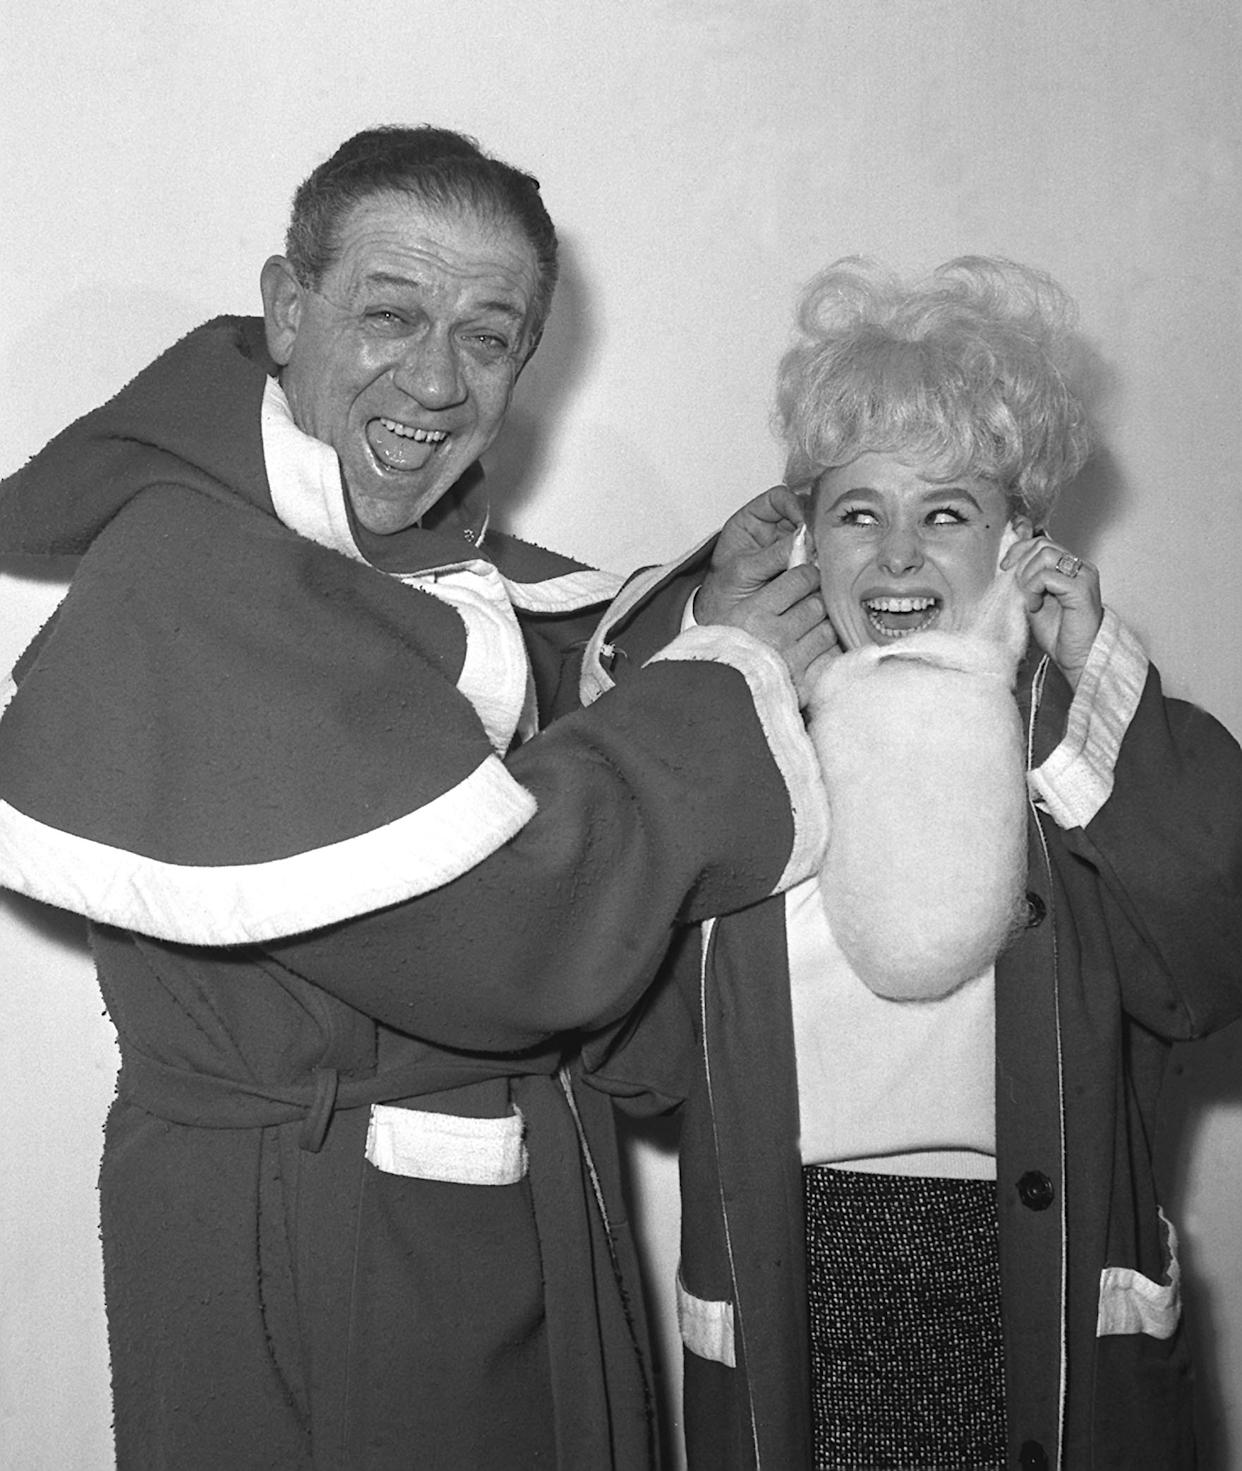 Sid James and Barbara Windsor dress up as Santa Claus for the Variety Club luncheon